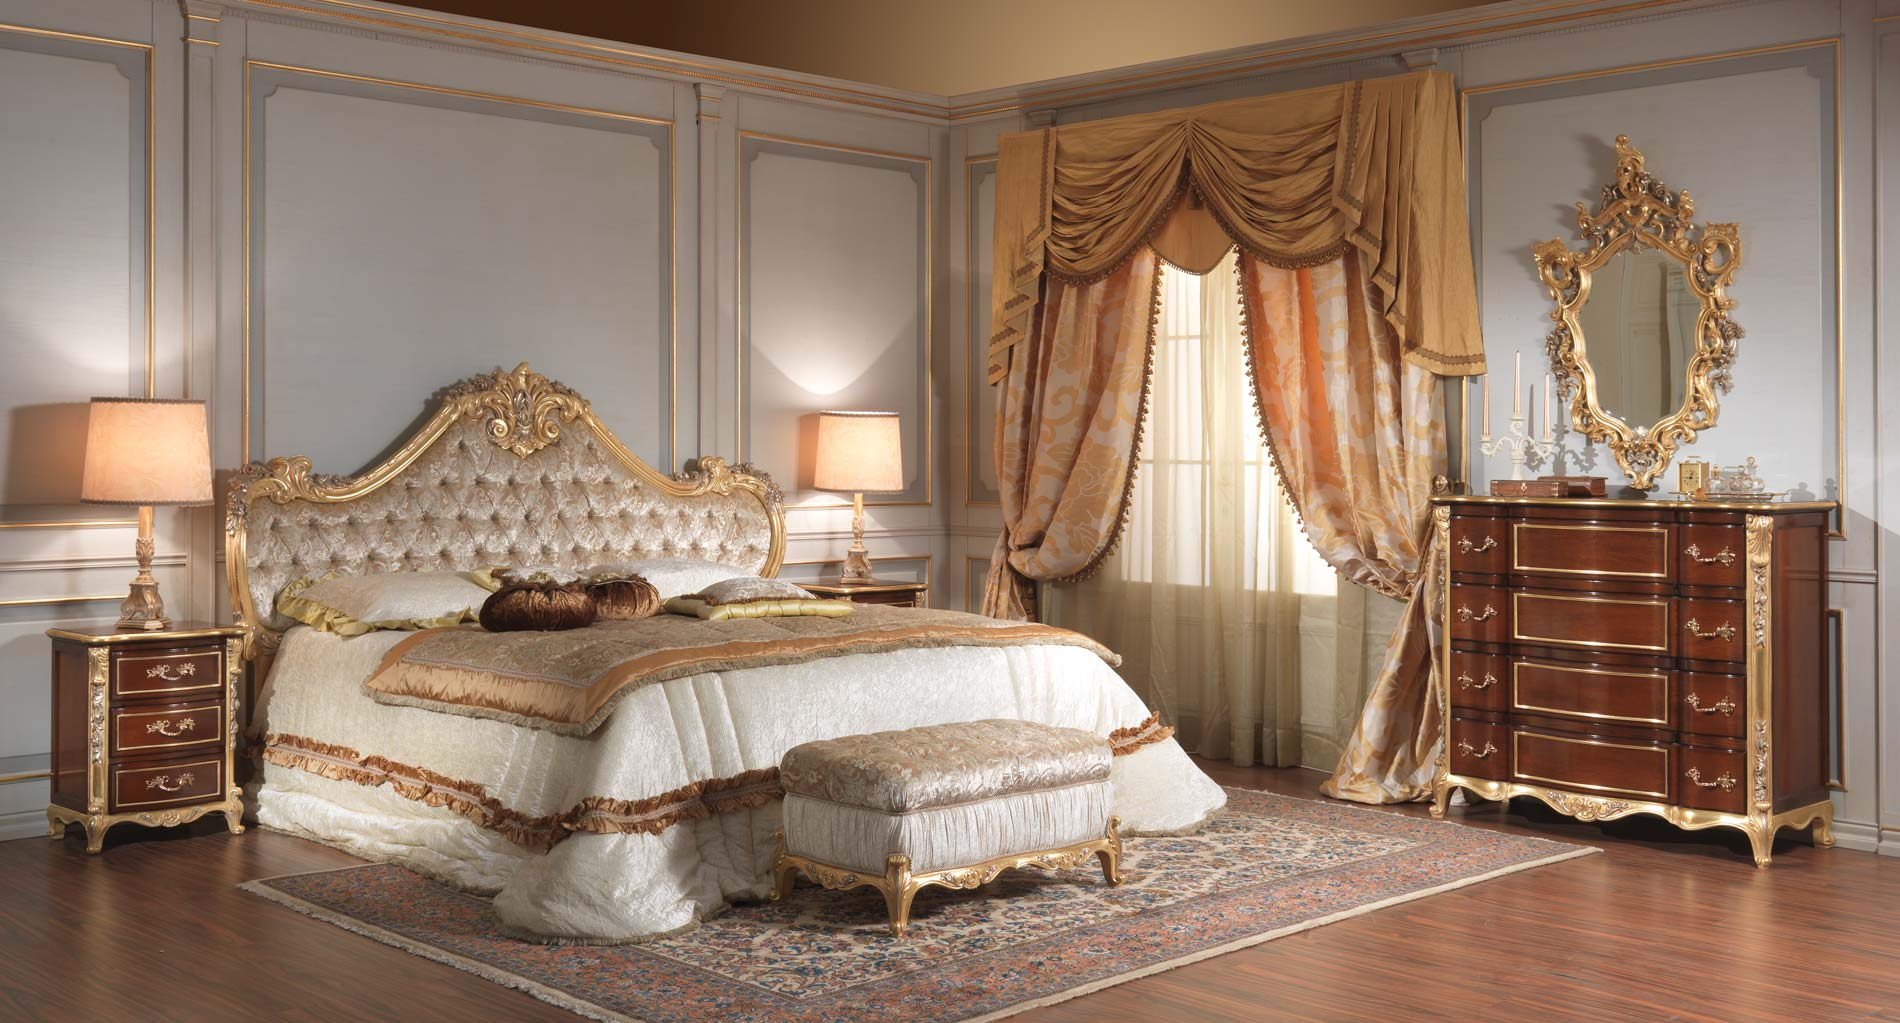 classic italian 18th century bedroom vimercati classic. Black Bedroom Furniture Sets. Home Design Ideas